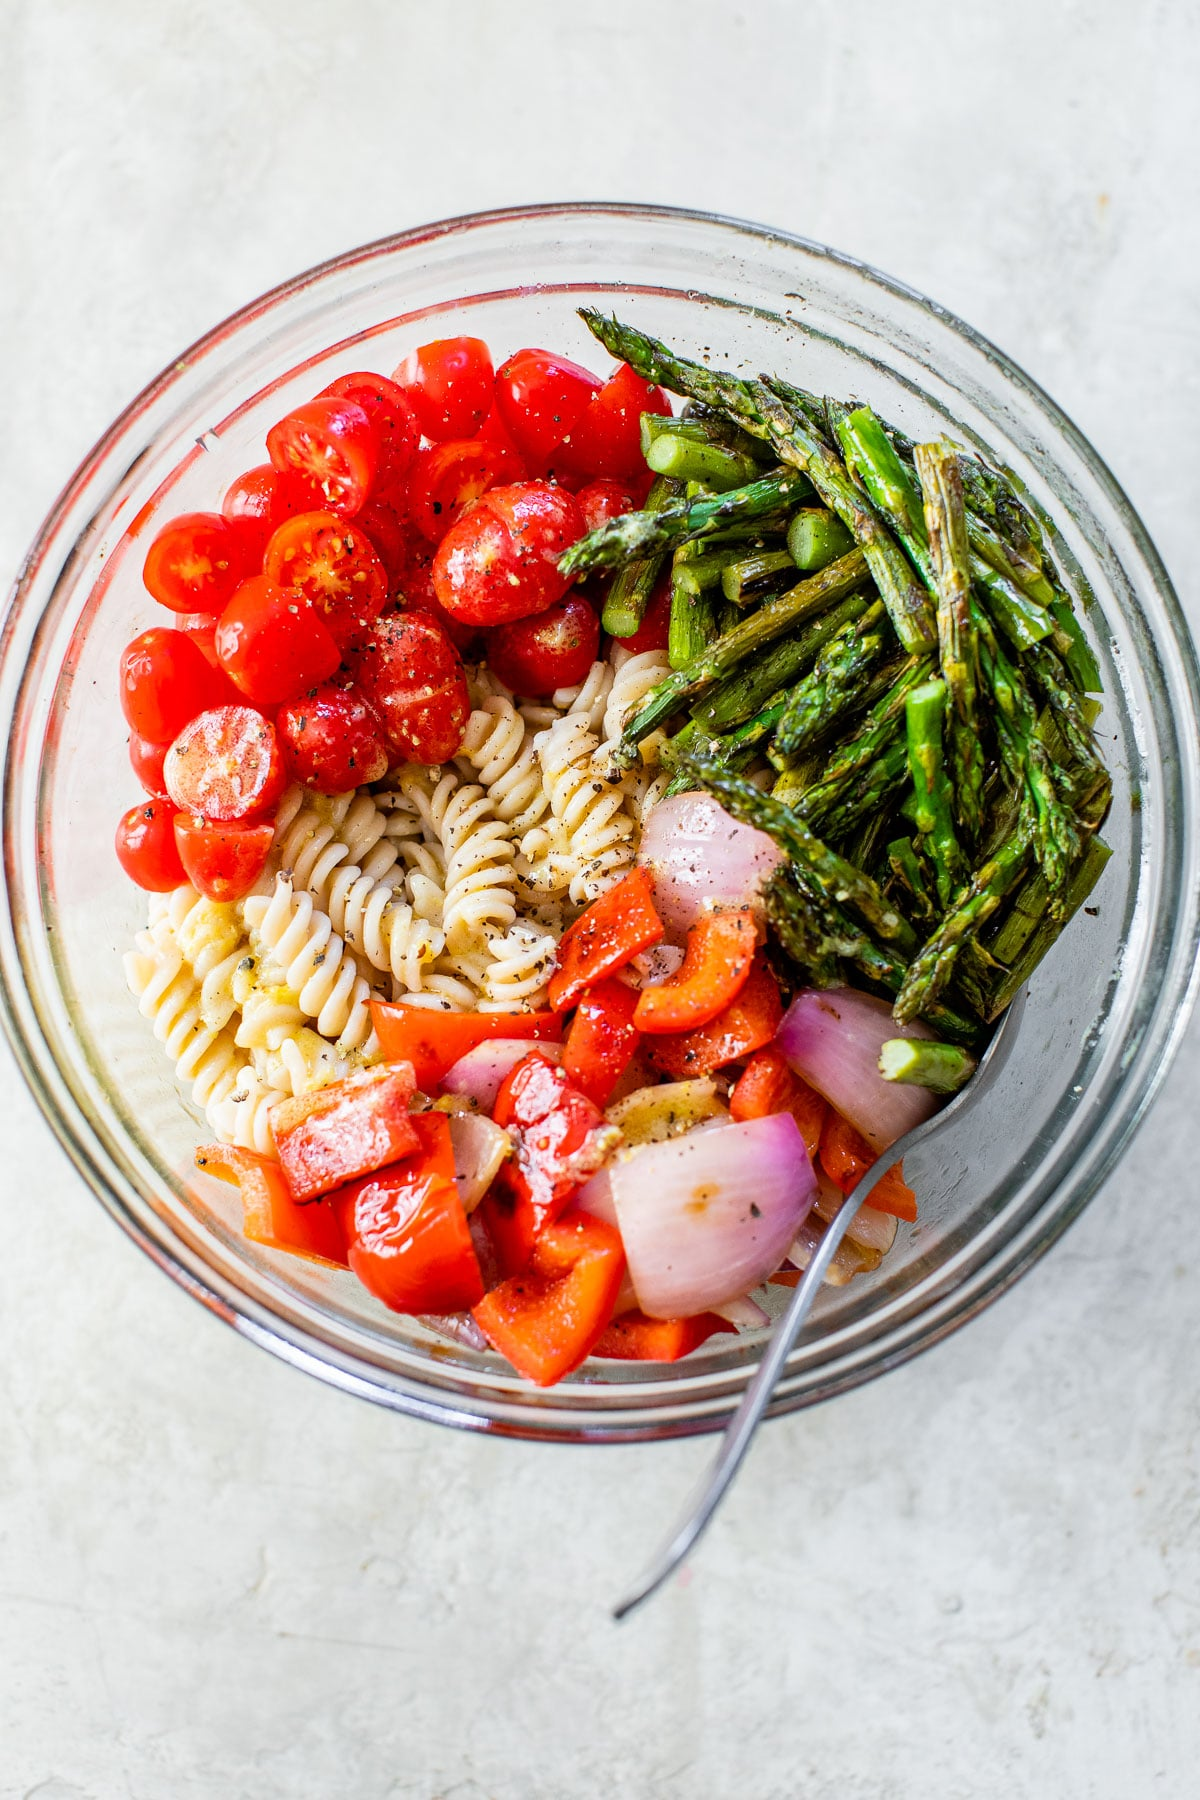 cooked rotini pasta in a bowl with asparagus, tomatoes, onion, and bell pepper